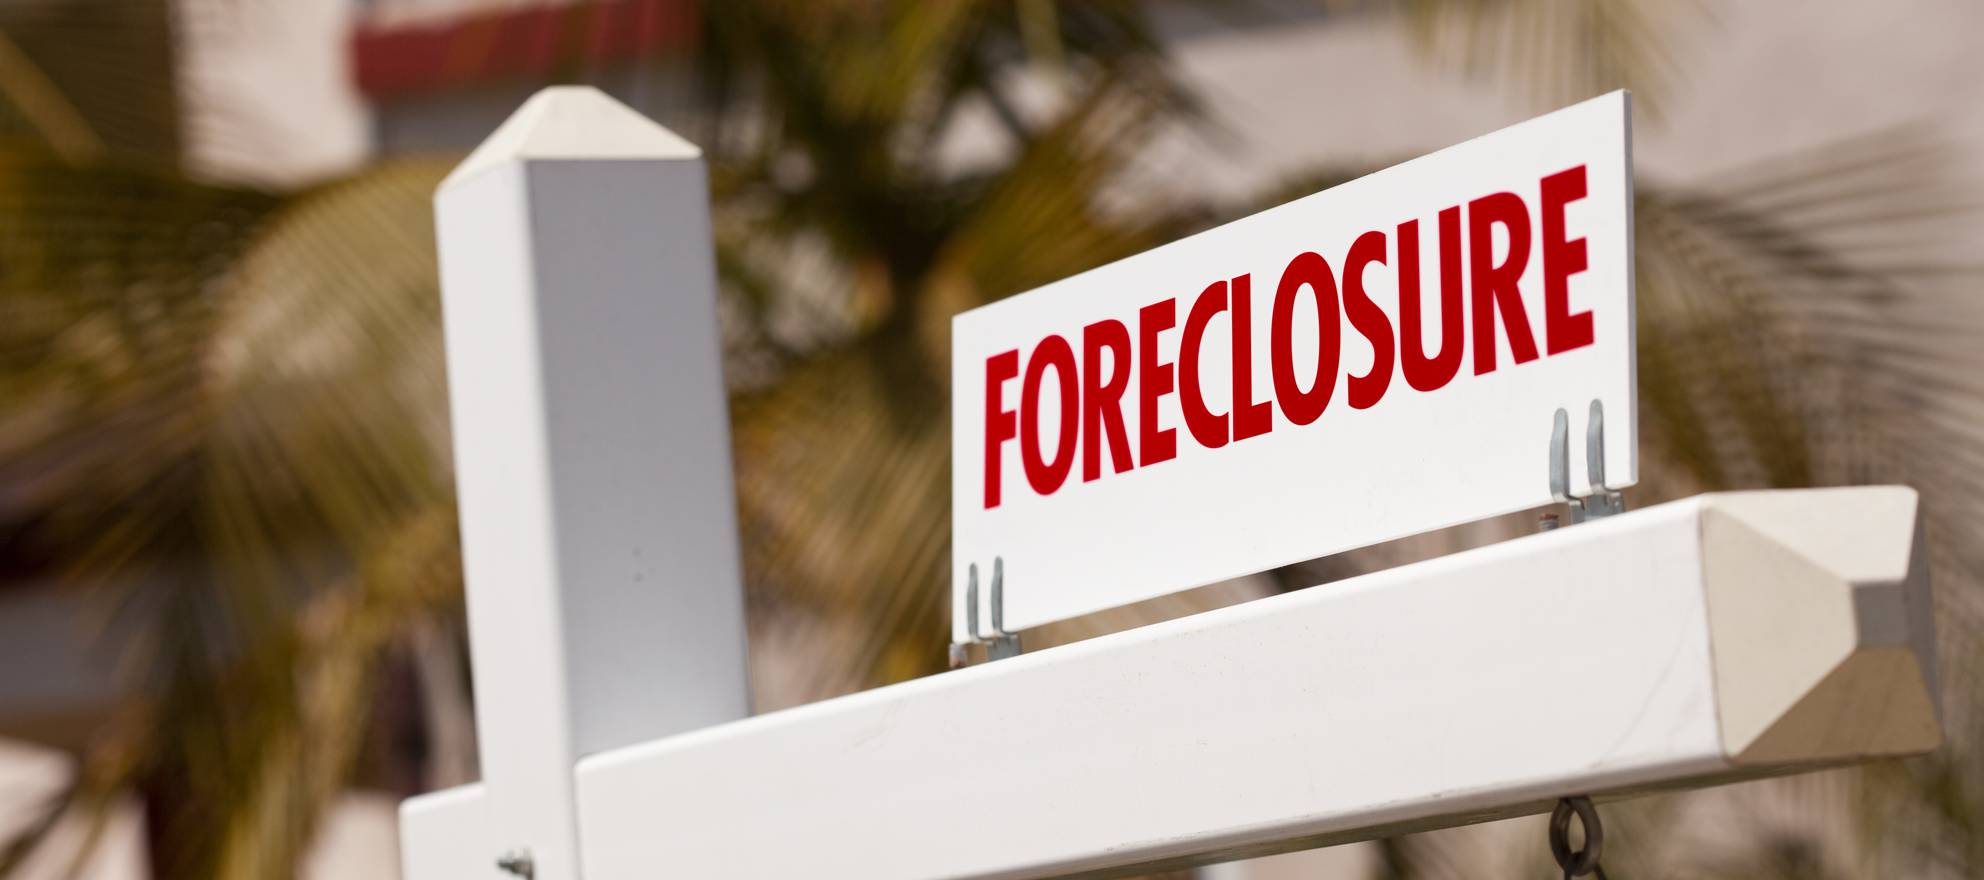 Is There a Connection Between College and Foreclosure?